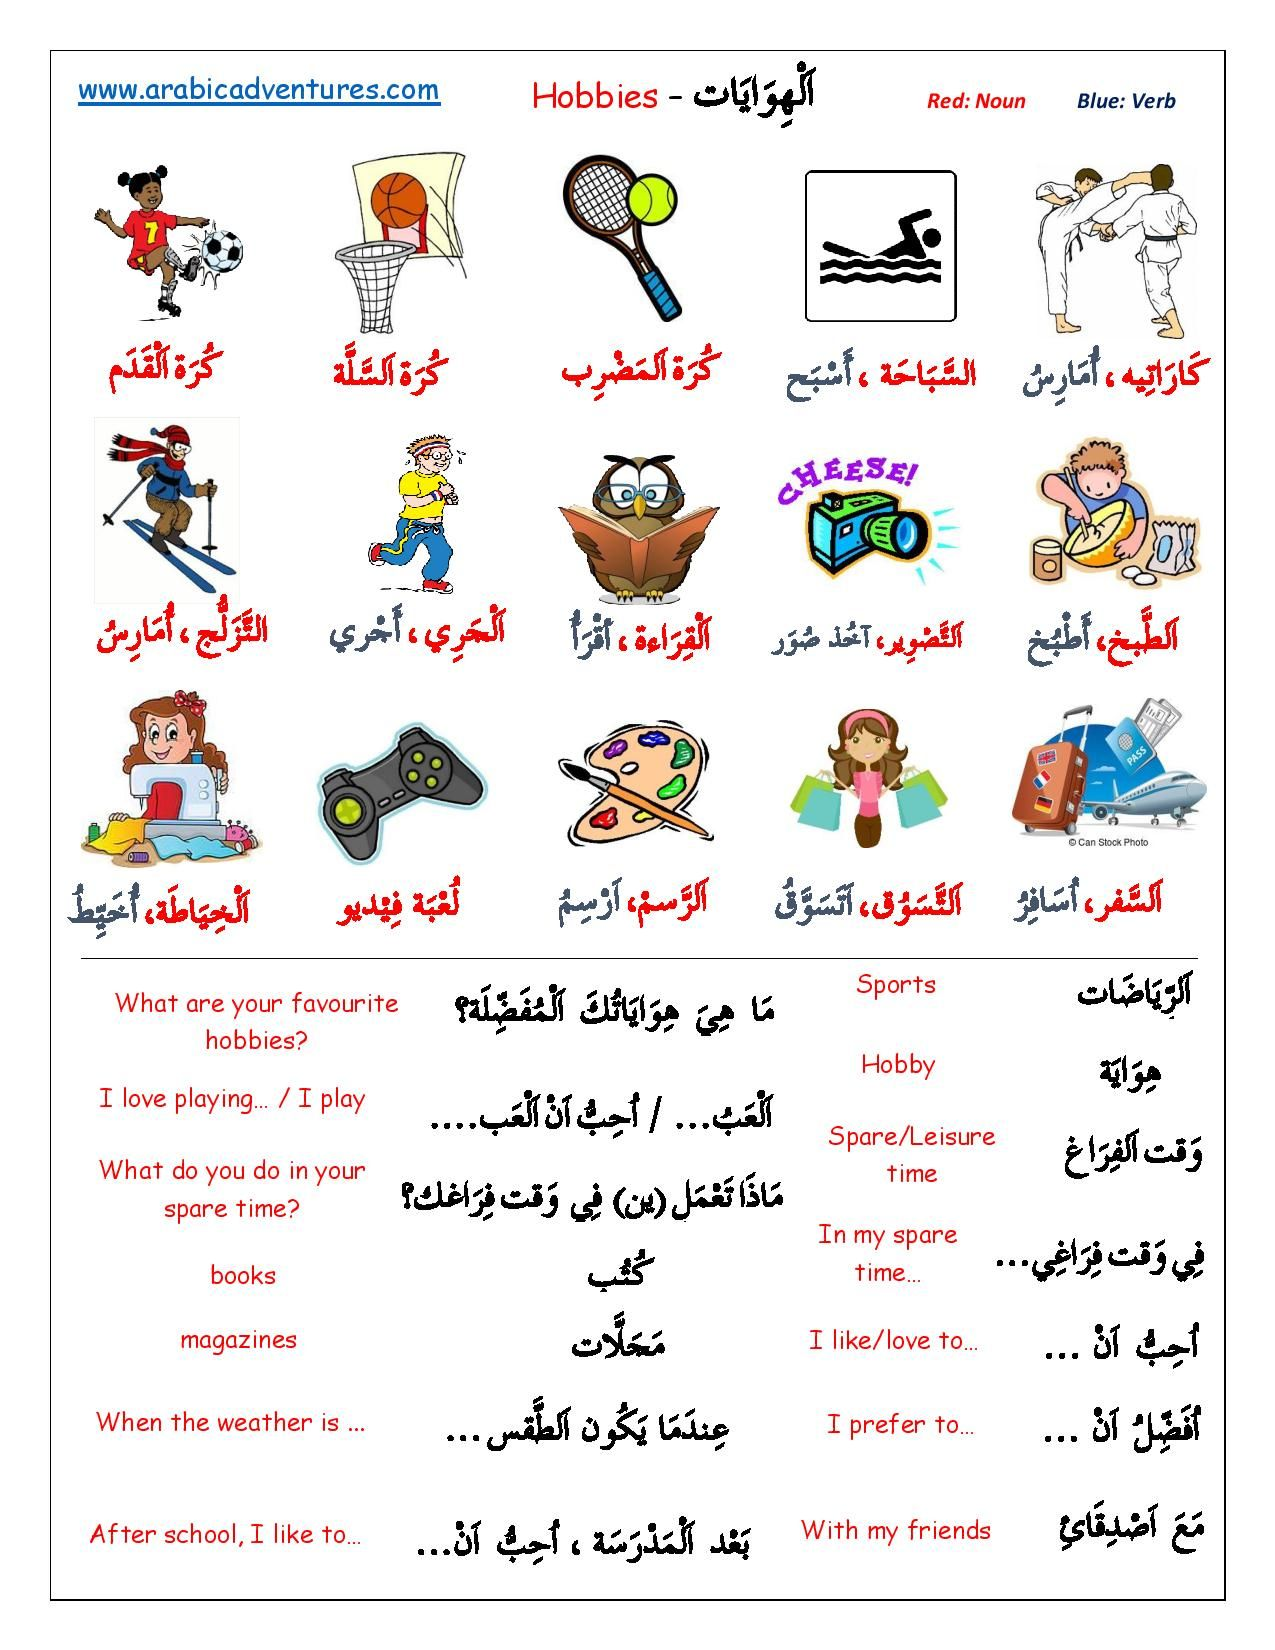 Spoken Arabic Hobbies